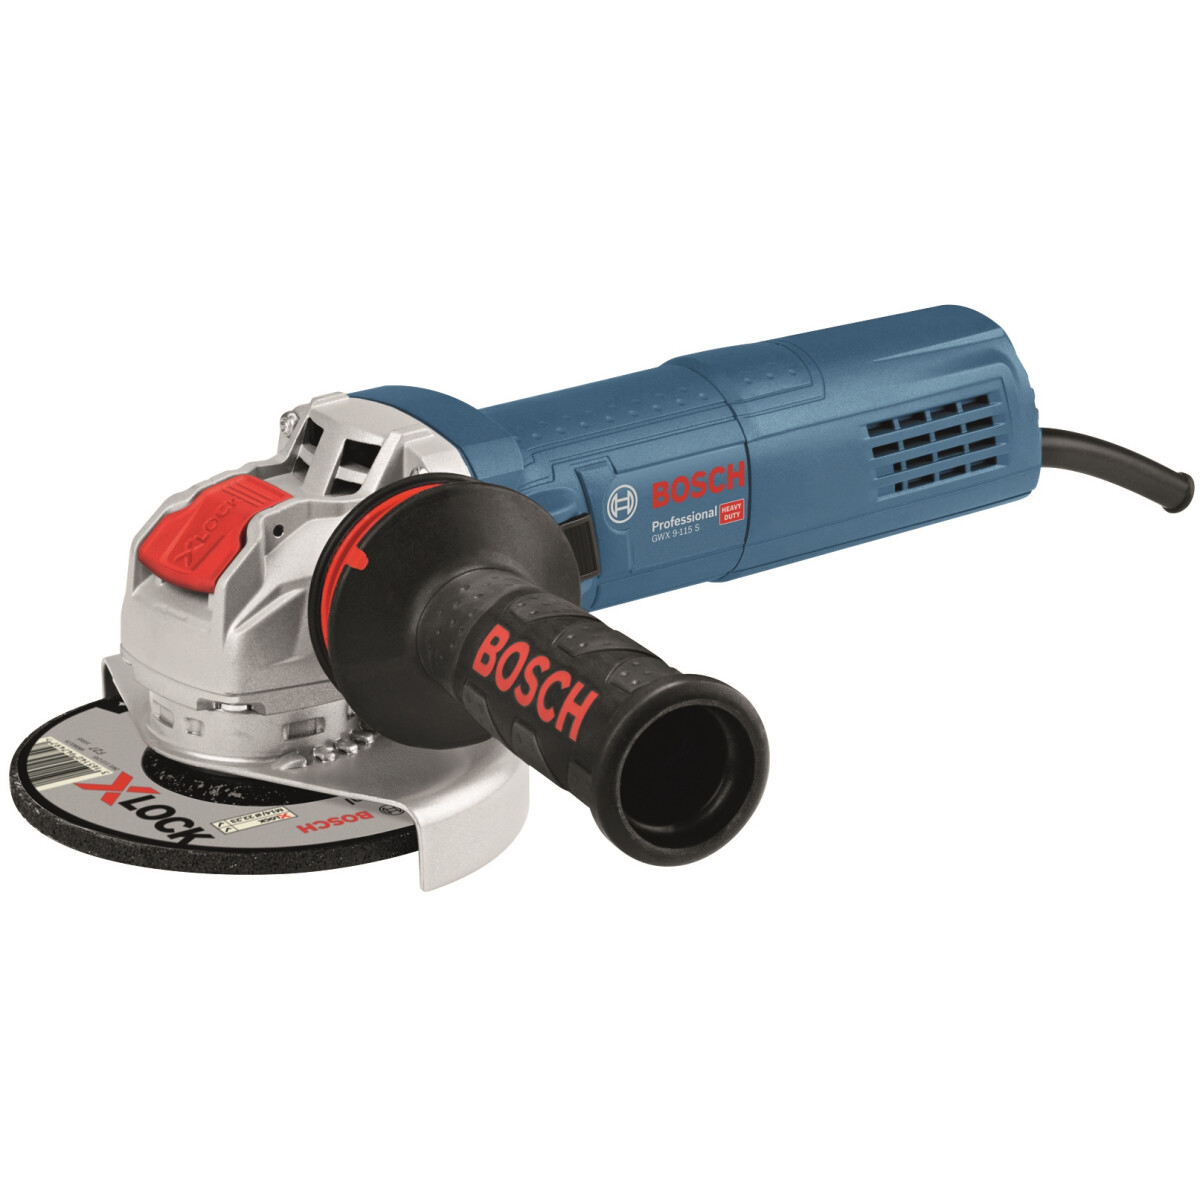 """Bosch GWX 9-115 S 4.1/2"""" 900W (115mm) X-Angle Grinder with Anti-Vibration Handle in Carton"""